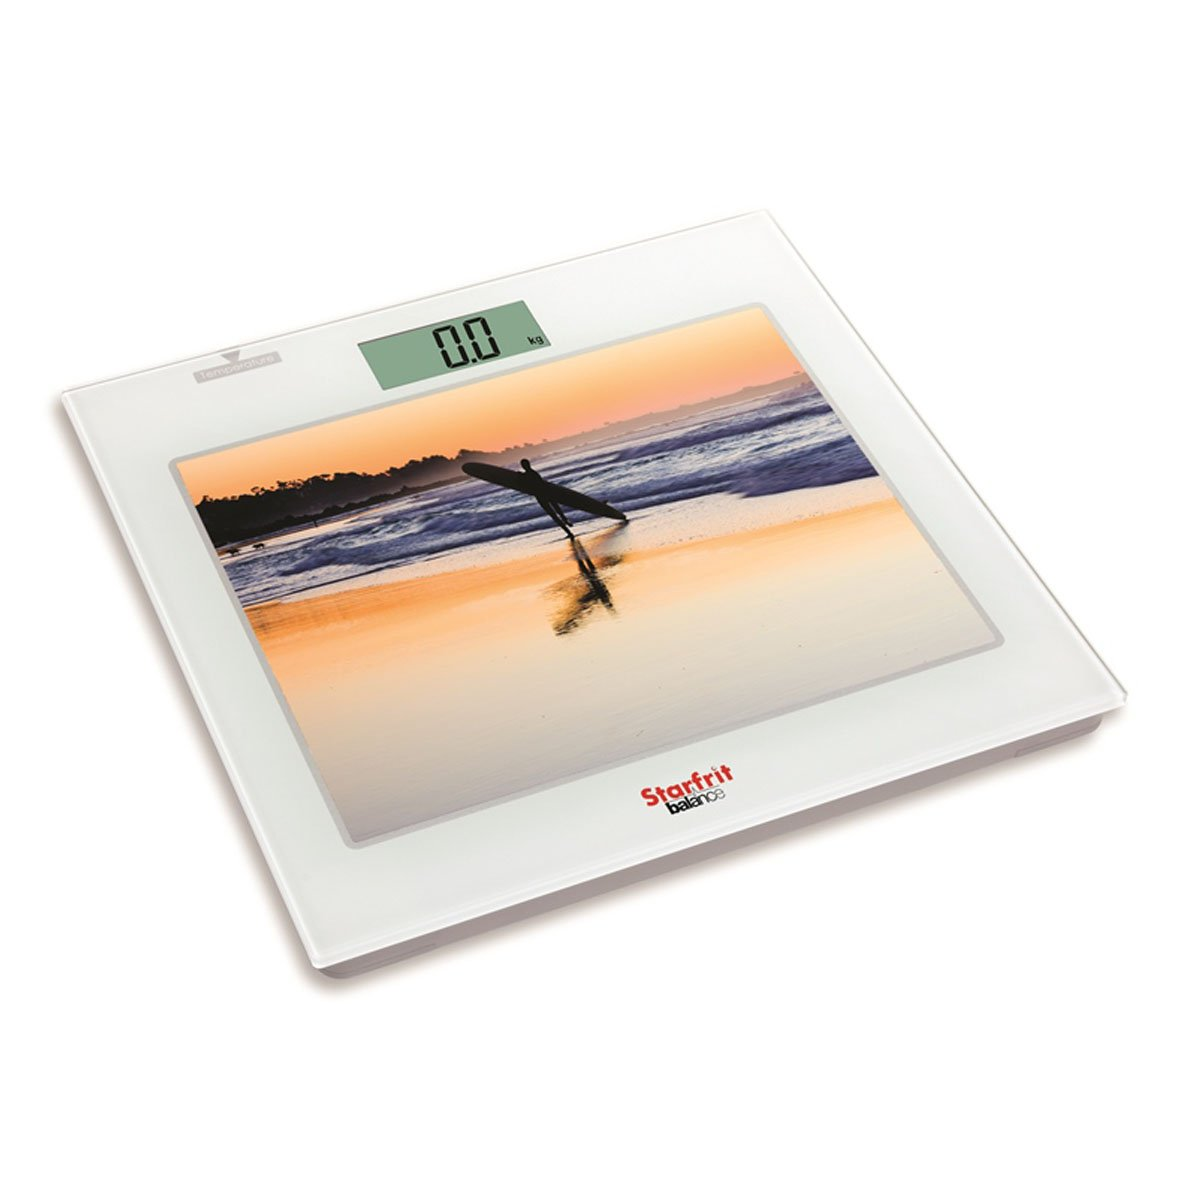 Starfrit Balance 93848 Electronic Bathroom Scale with Picture Insert, White 093848-001-0000